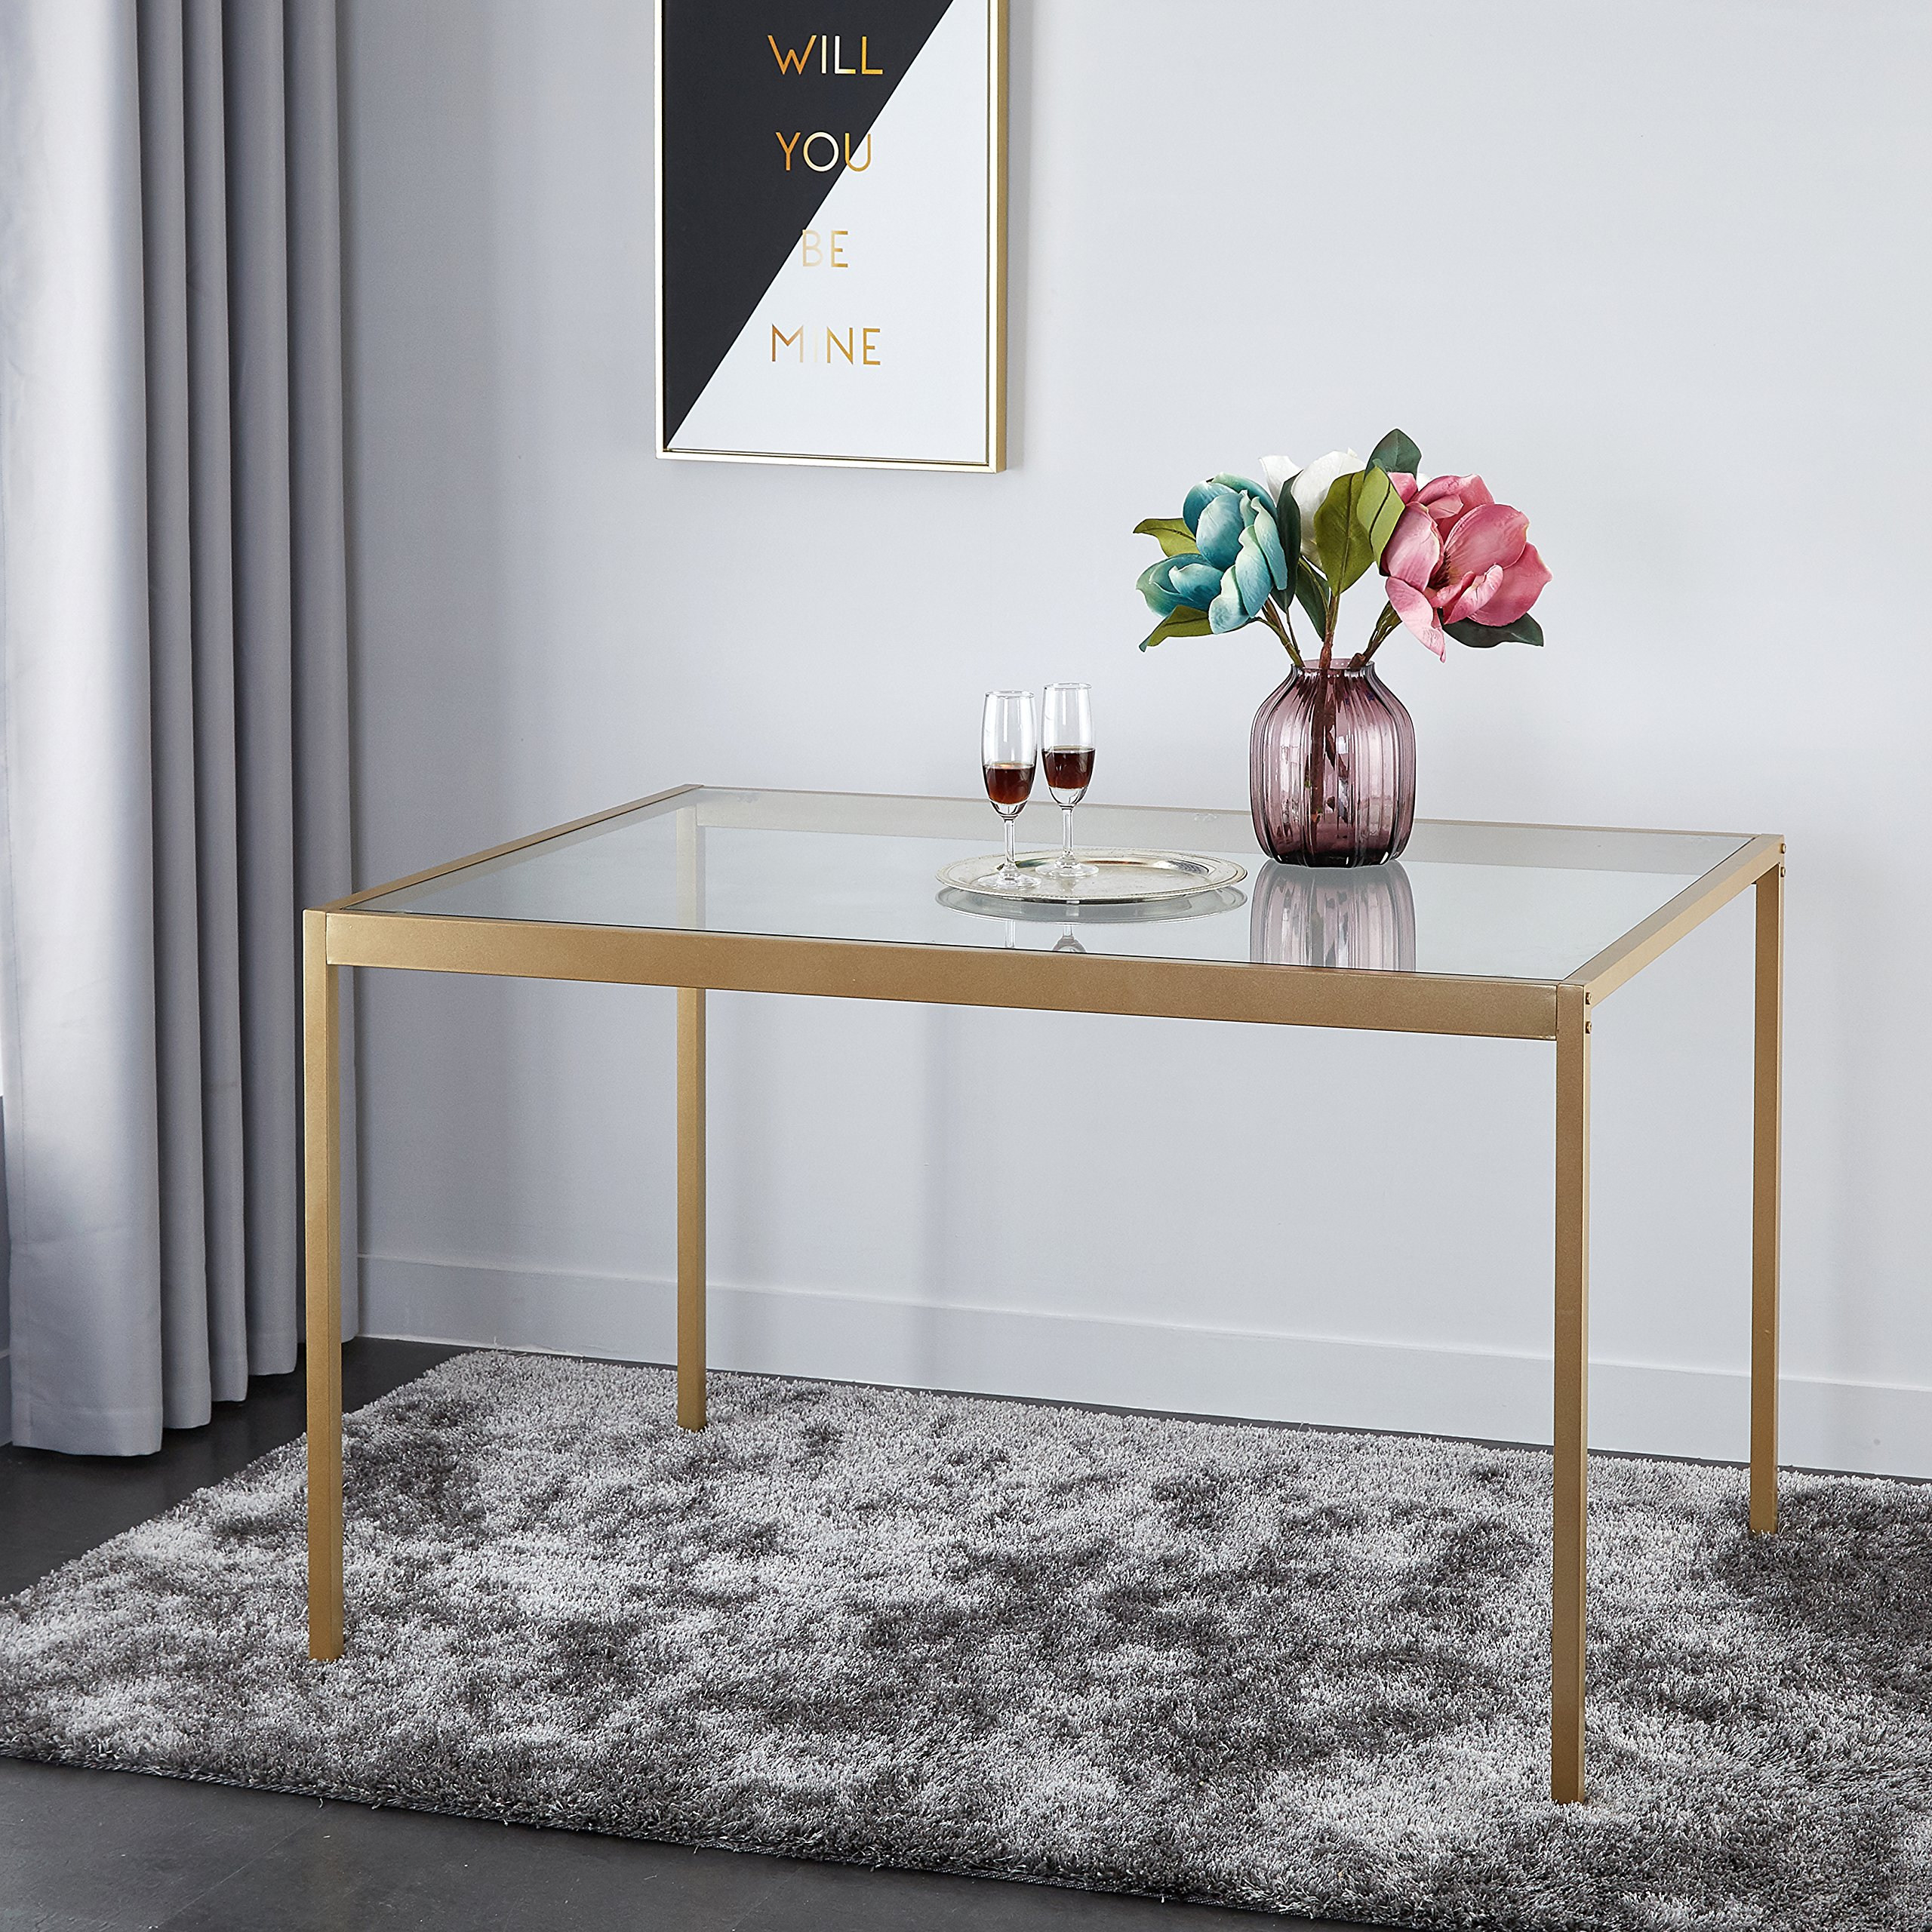 Stylish Tempered Glass and Metal Dining Table (Medium)